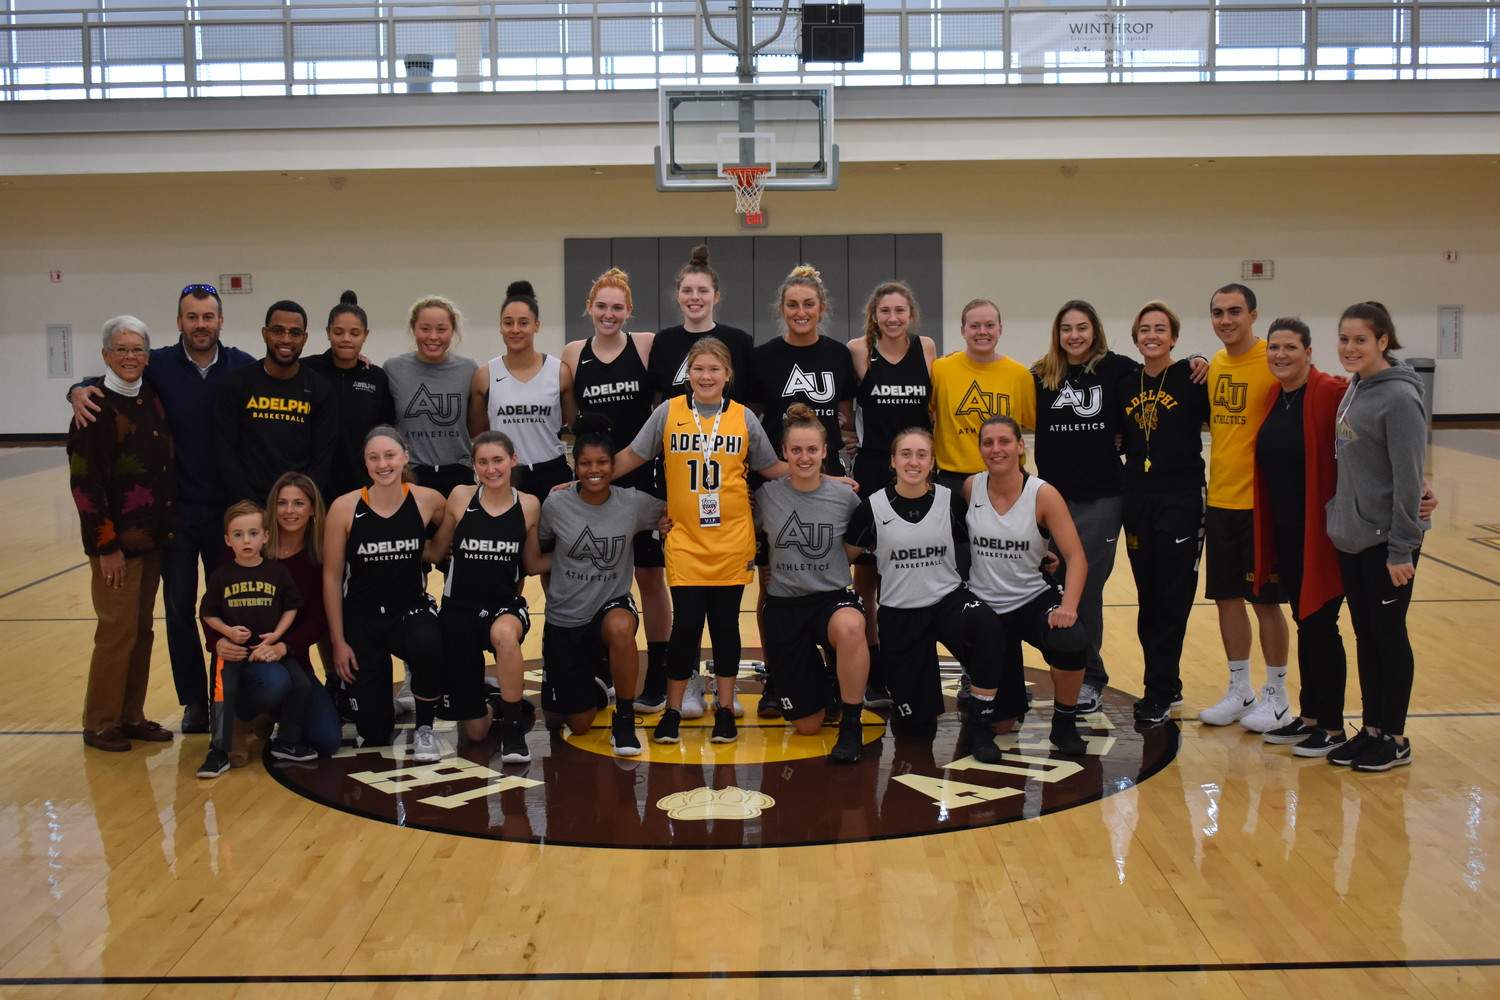 Bianca Onorato, center, was joined by her family and Adelphi student-athletes on the court of the university's recreation center after the ceremonial signing.